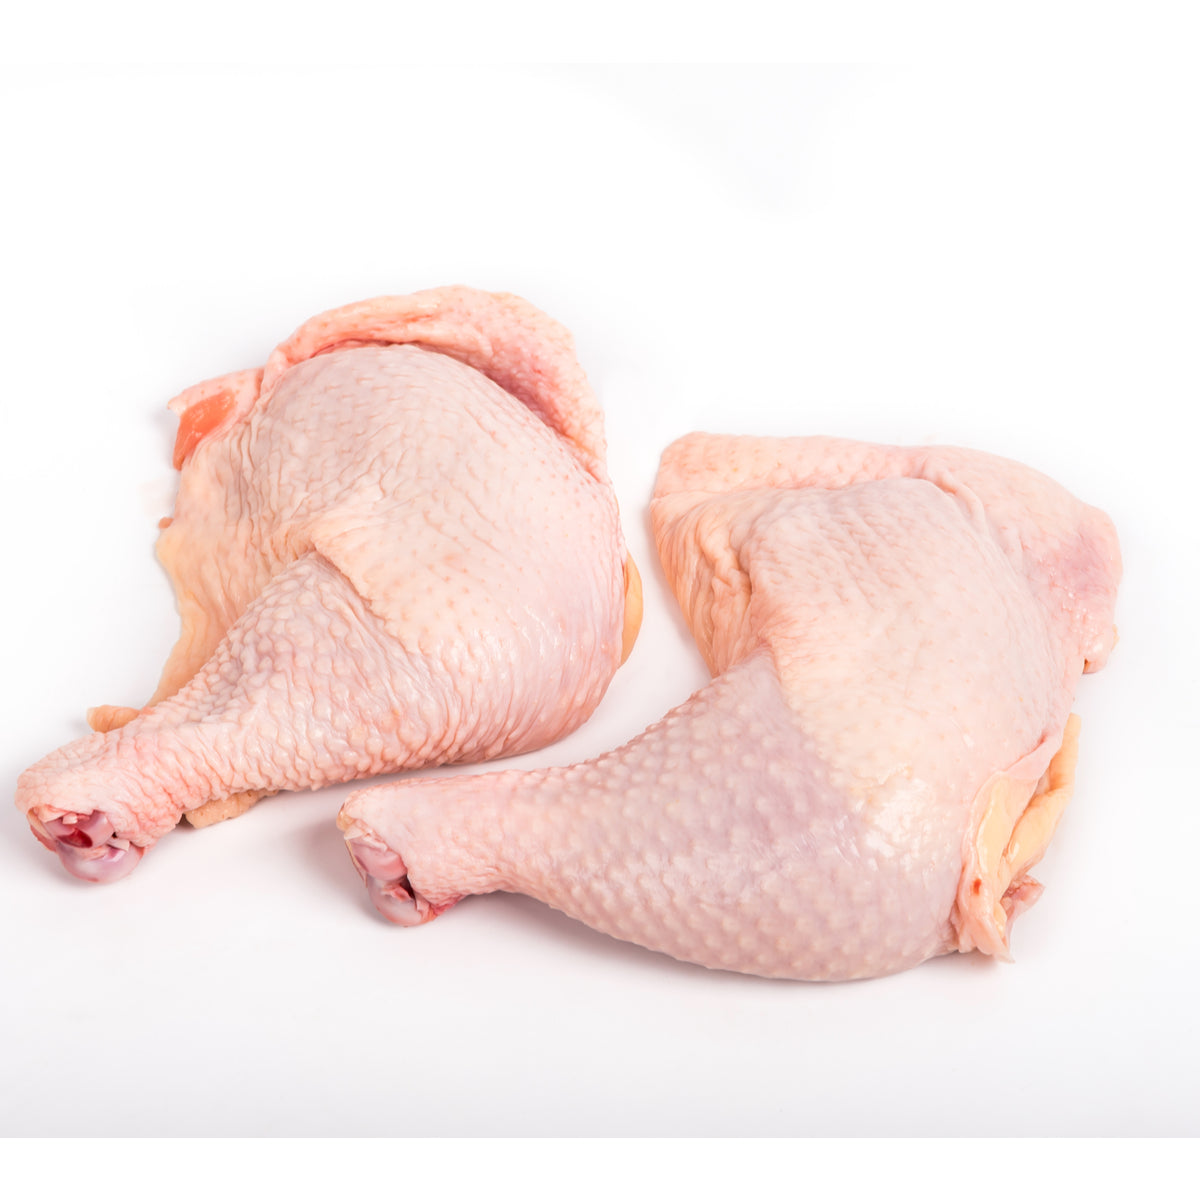 CHICKEN LEGS (2 pcs)